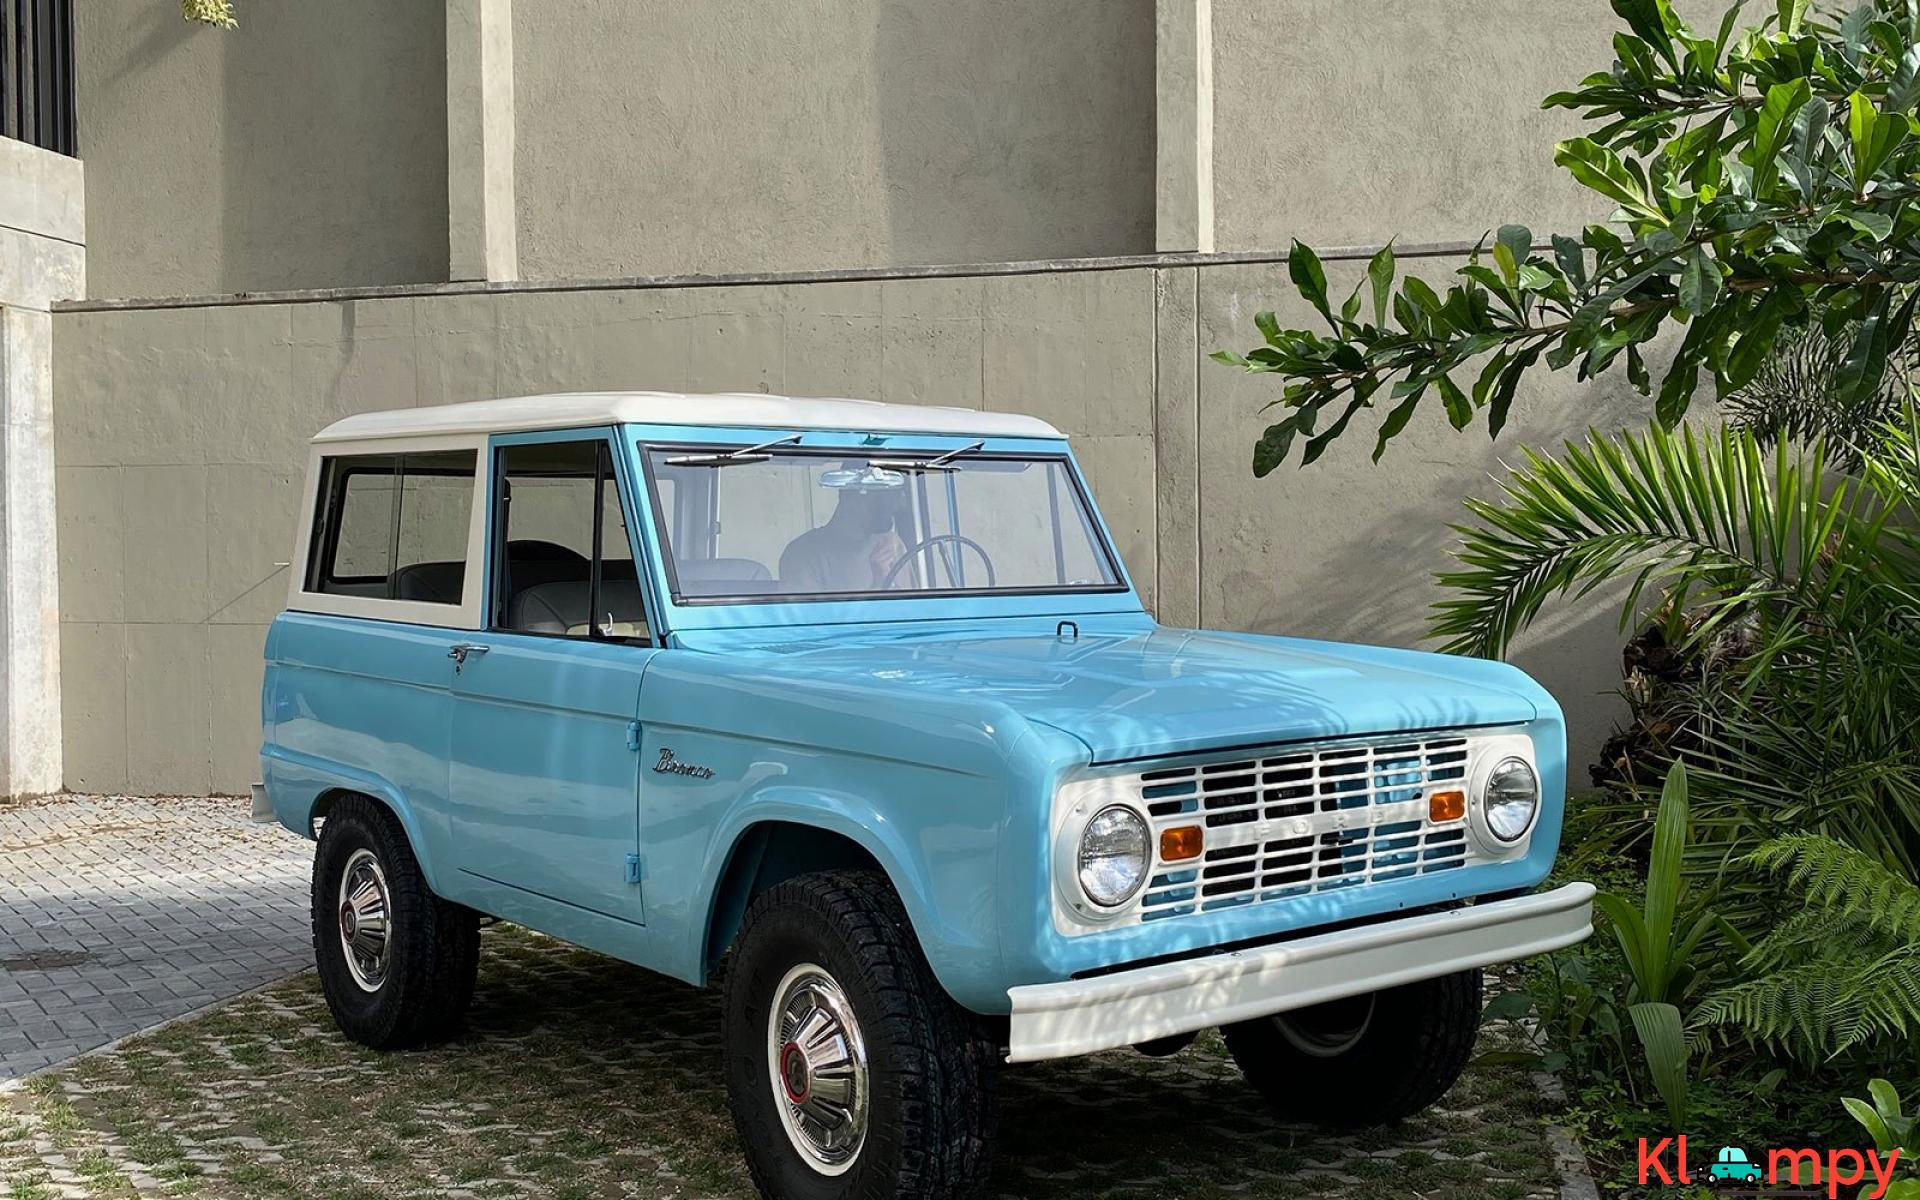 1967 Ford Bronco 170 Inline-Six - 5/21